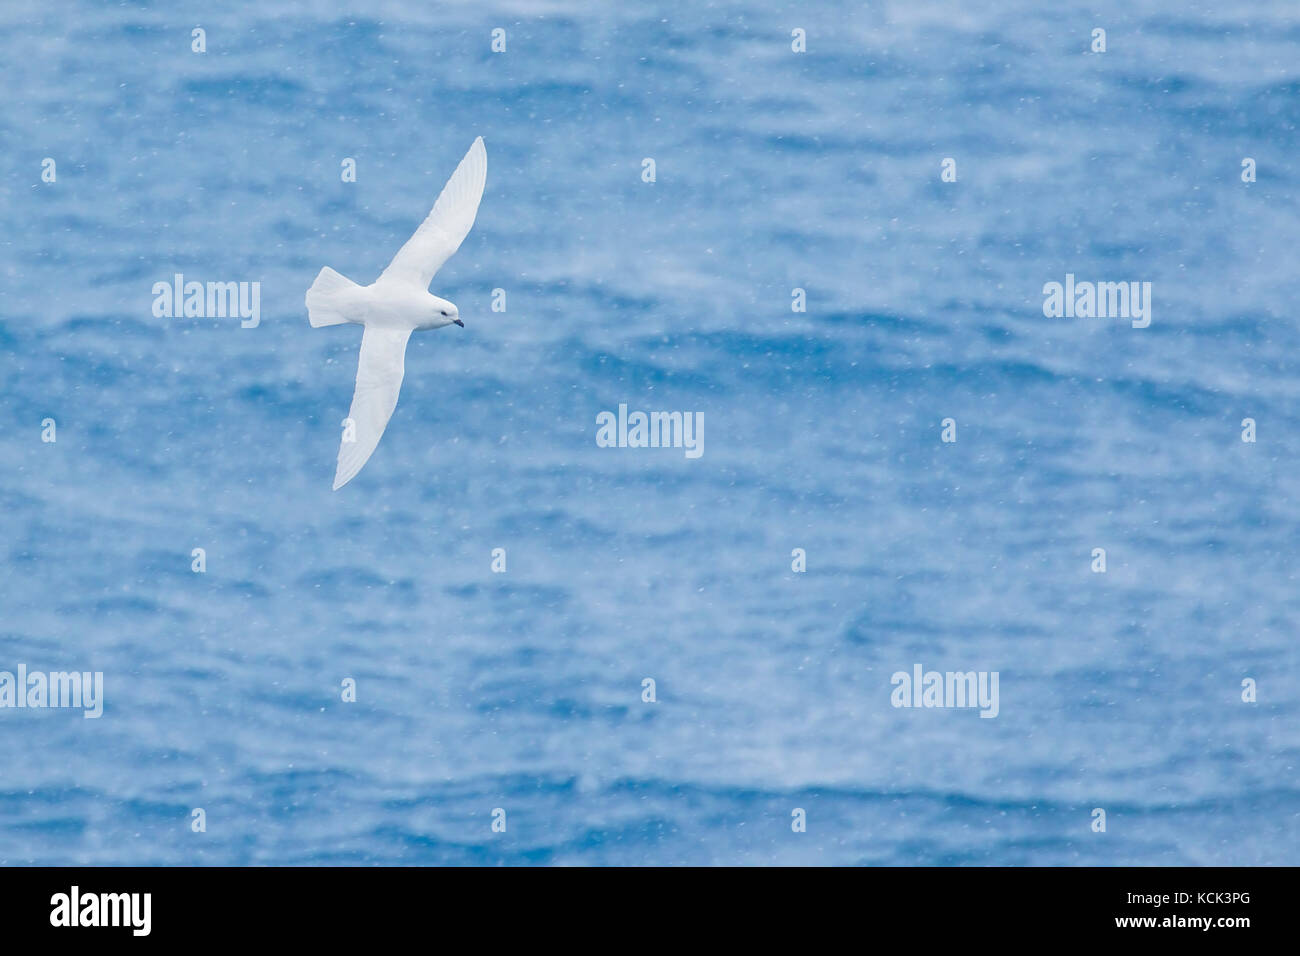 Snow Petrel (Pagodroma nivea) flying over the ocean searching for food near South Georgia Island. - Stock Image